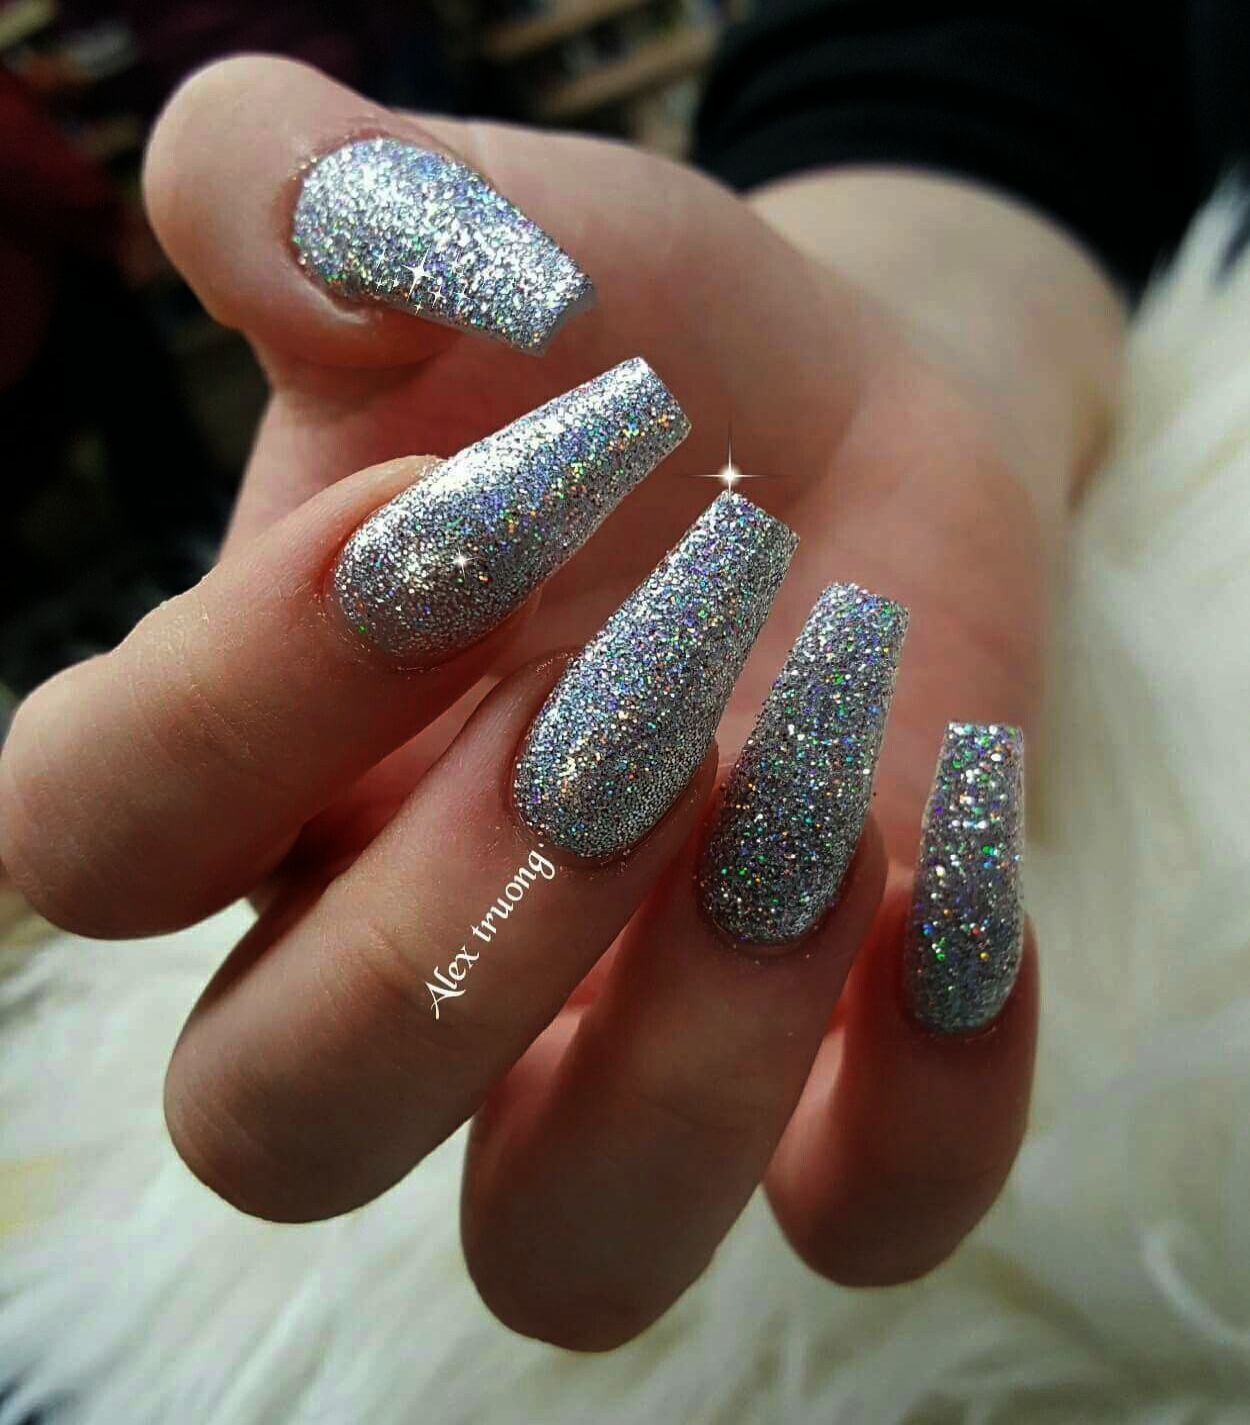 Home Blend Of Bites Silver Sparkly Nails Silver Acrylic Nails Silver Nails